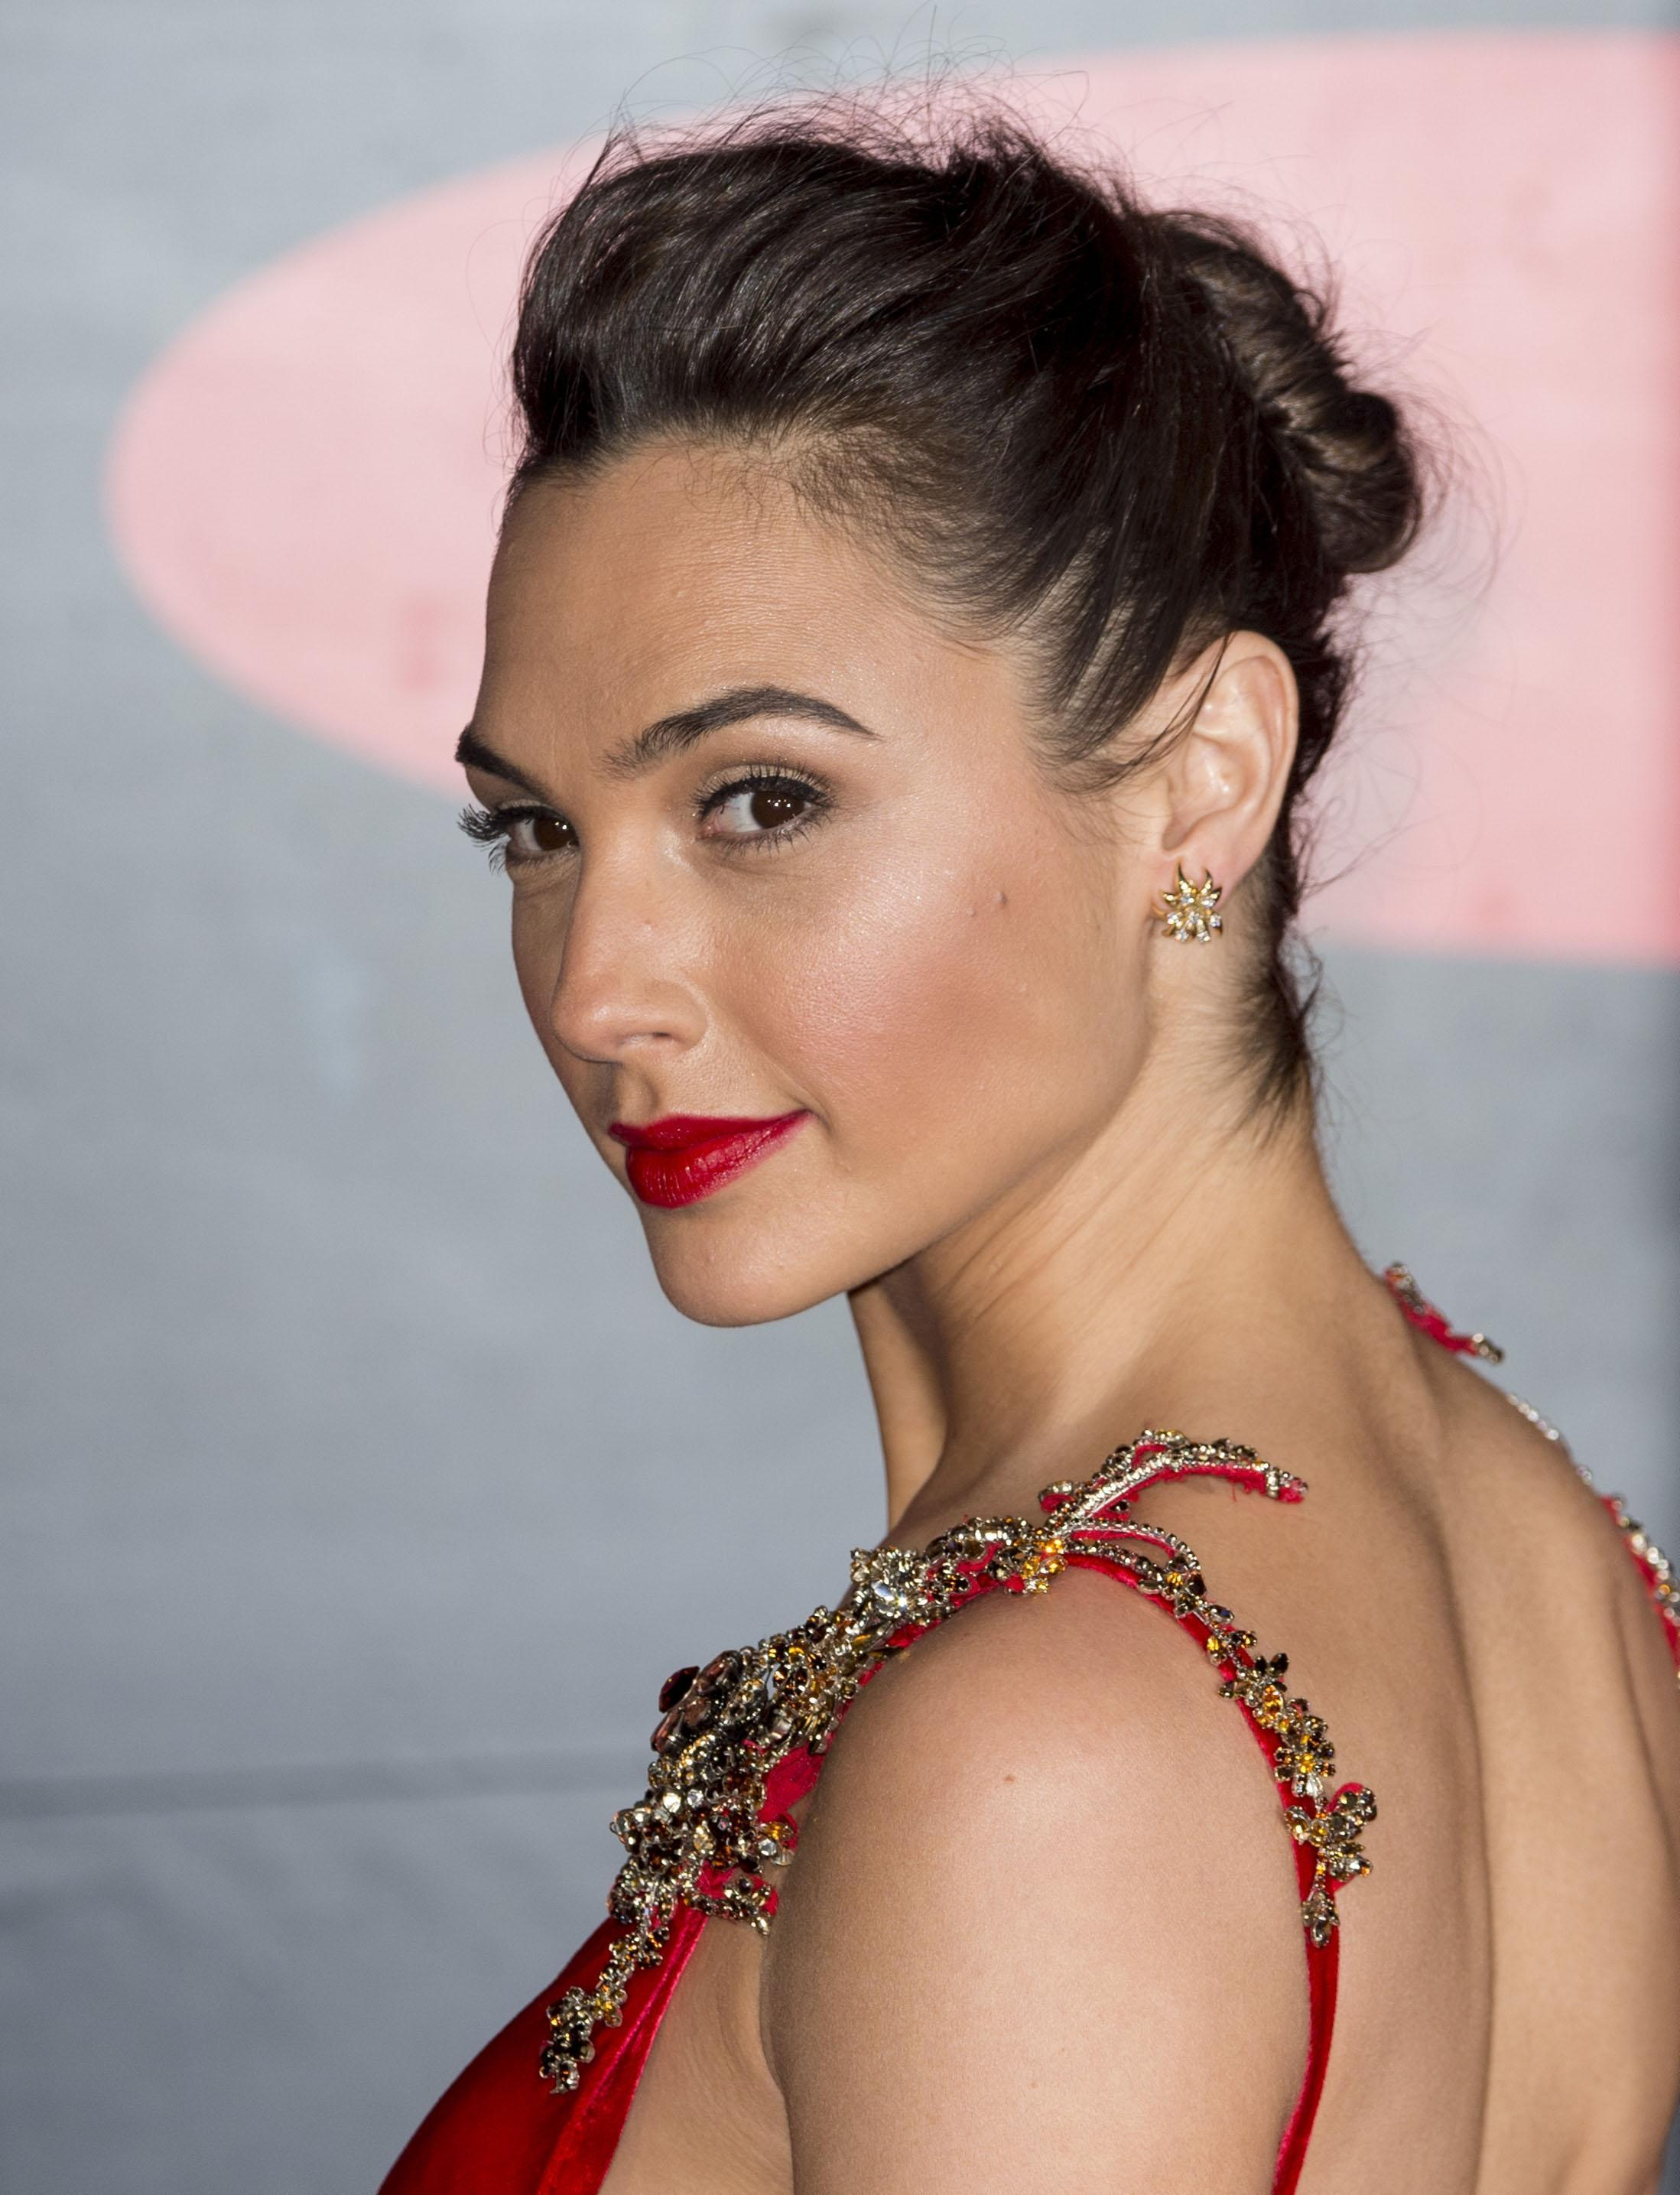 Modern Dress Tumblr - How gal gadot s stylist is dressing wonder woman for the red carpet